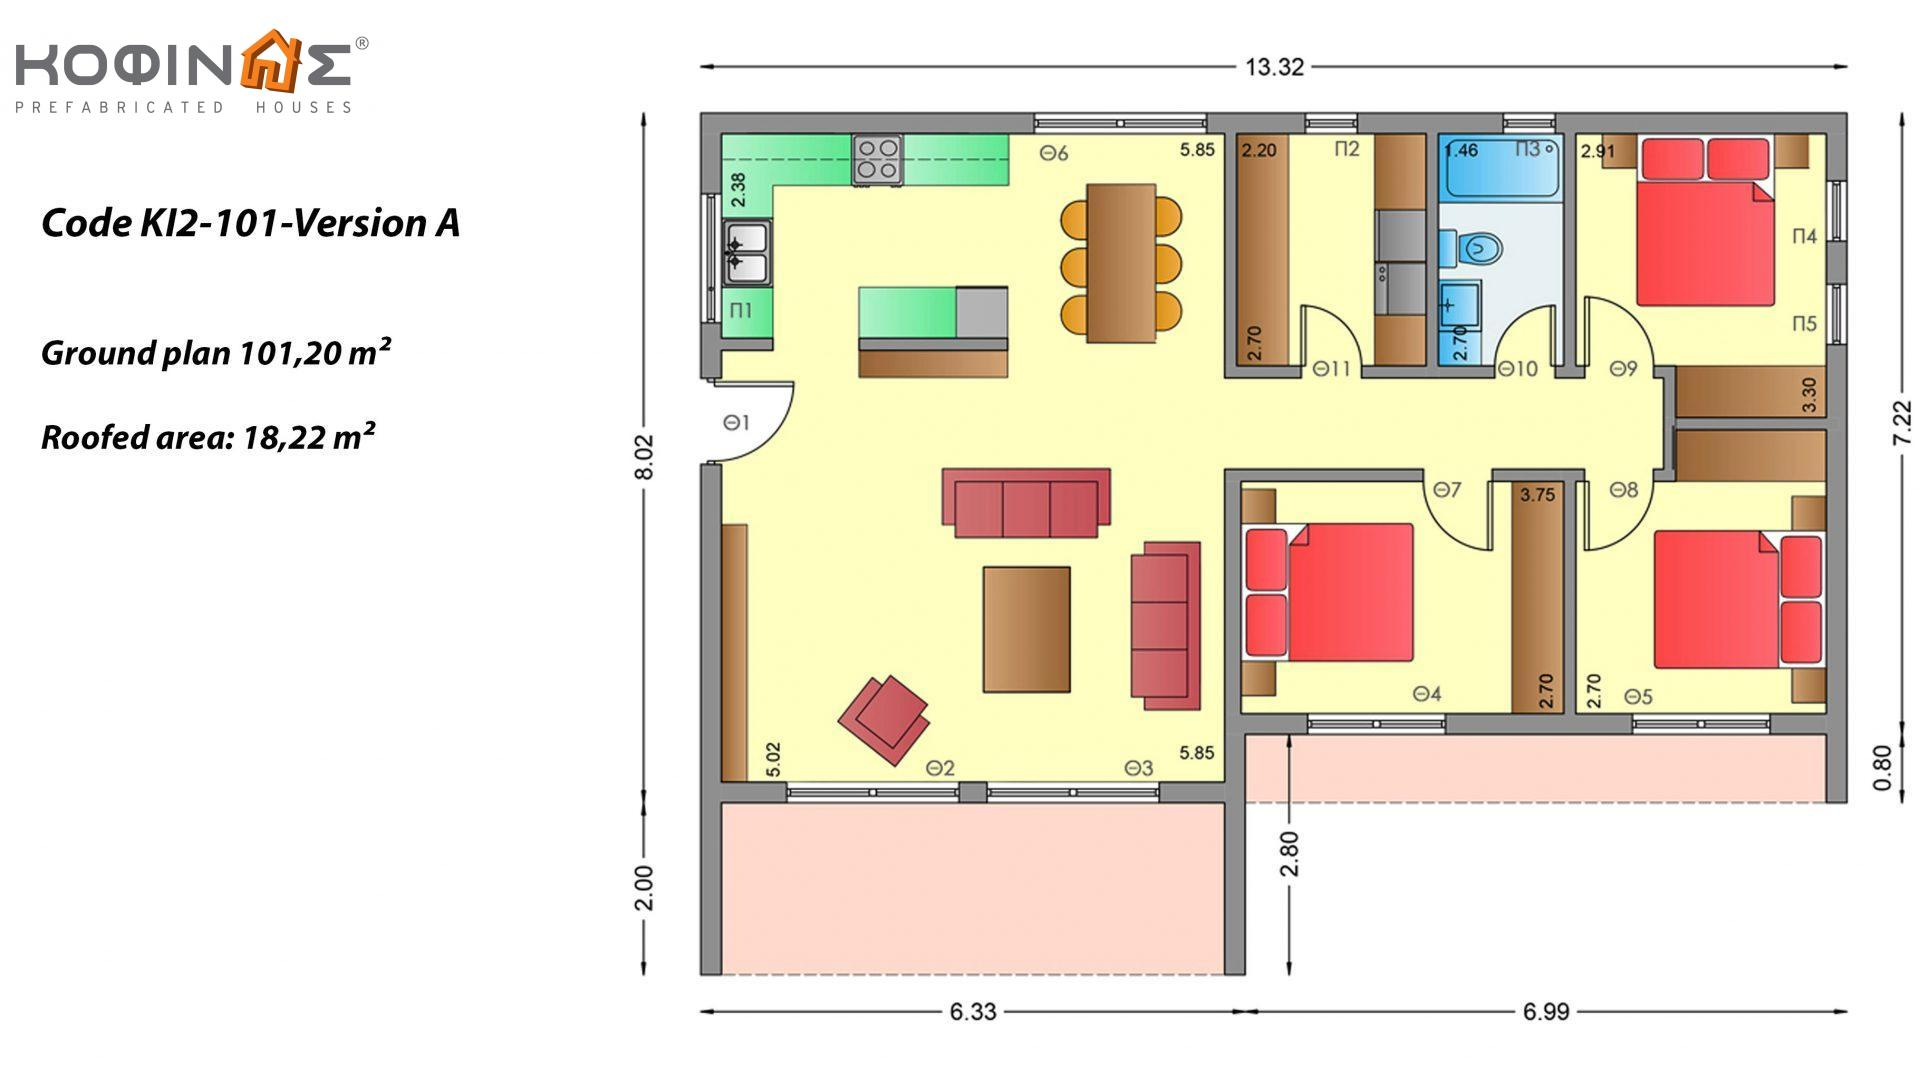 1-story house KI2-101, total surface of 101,20 m², roofed areas 18,22 m²